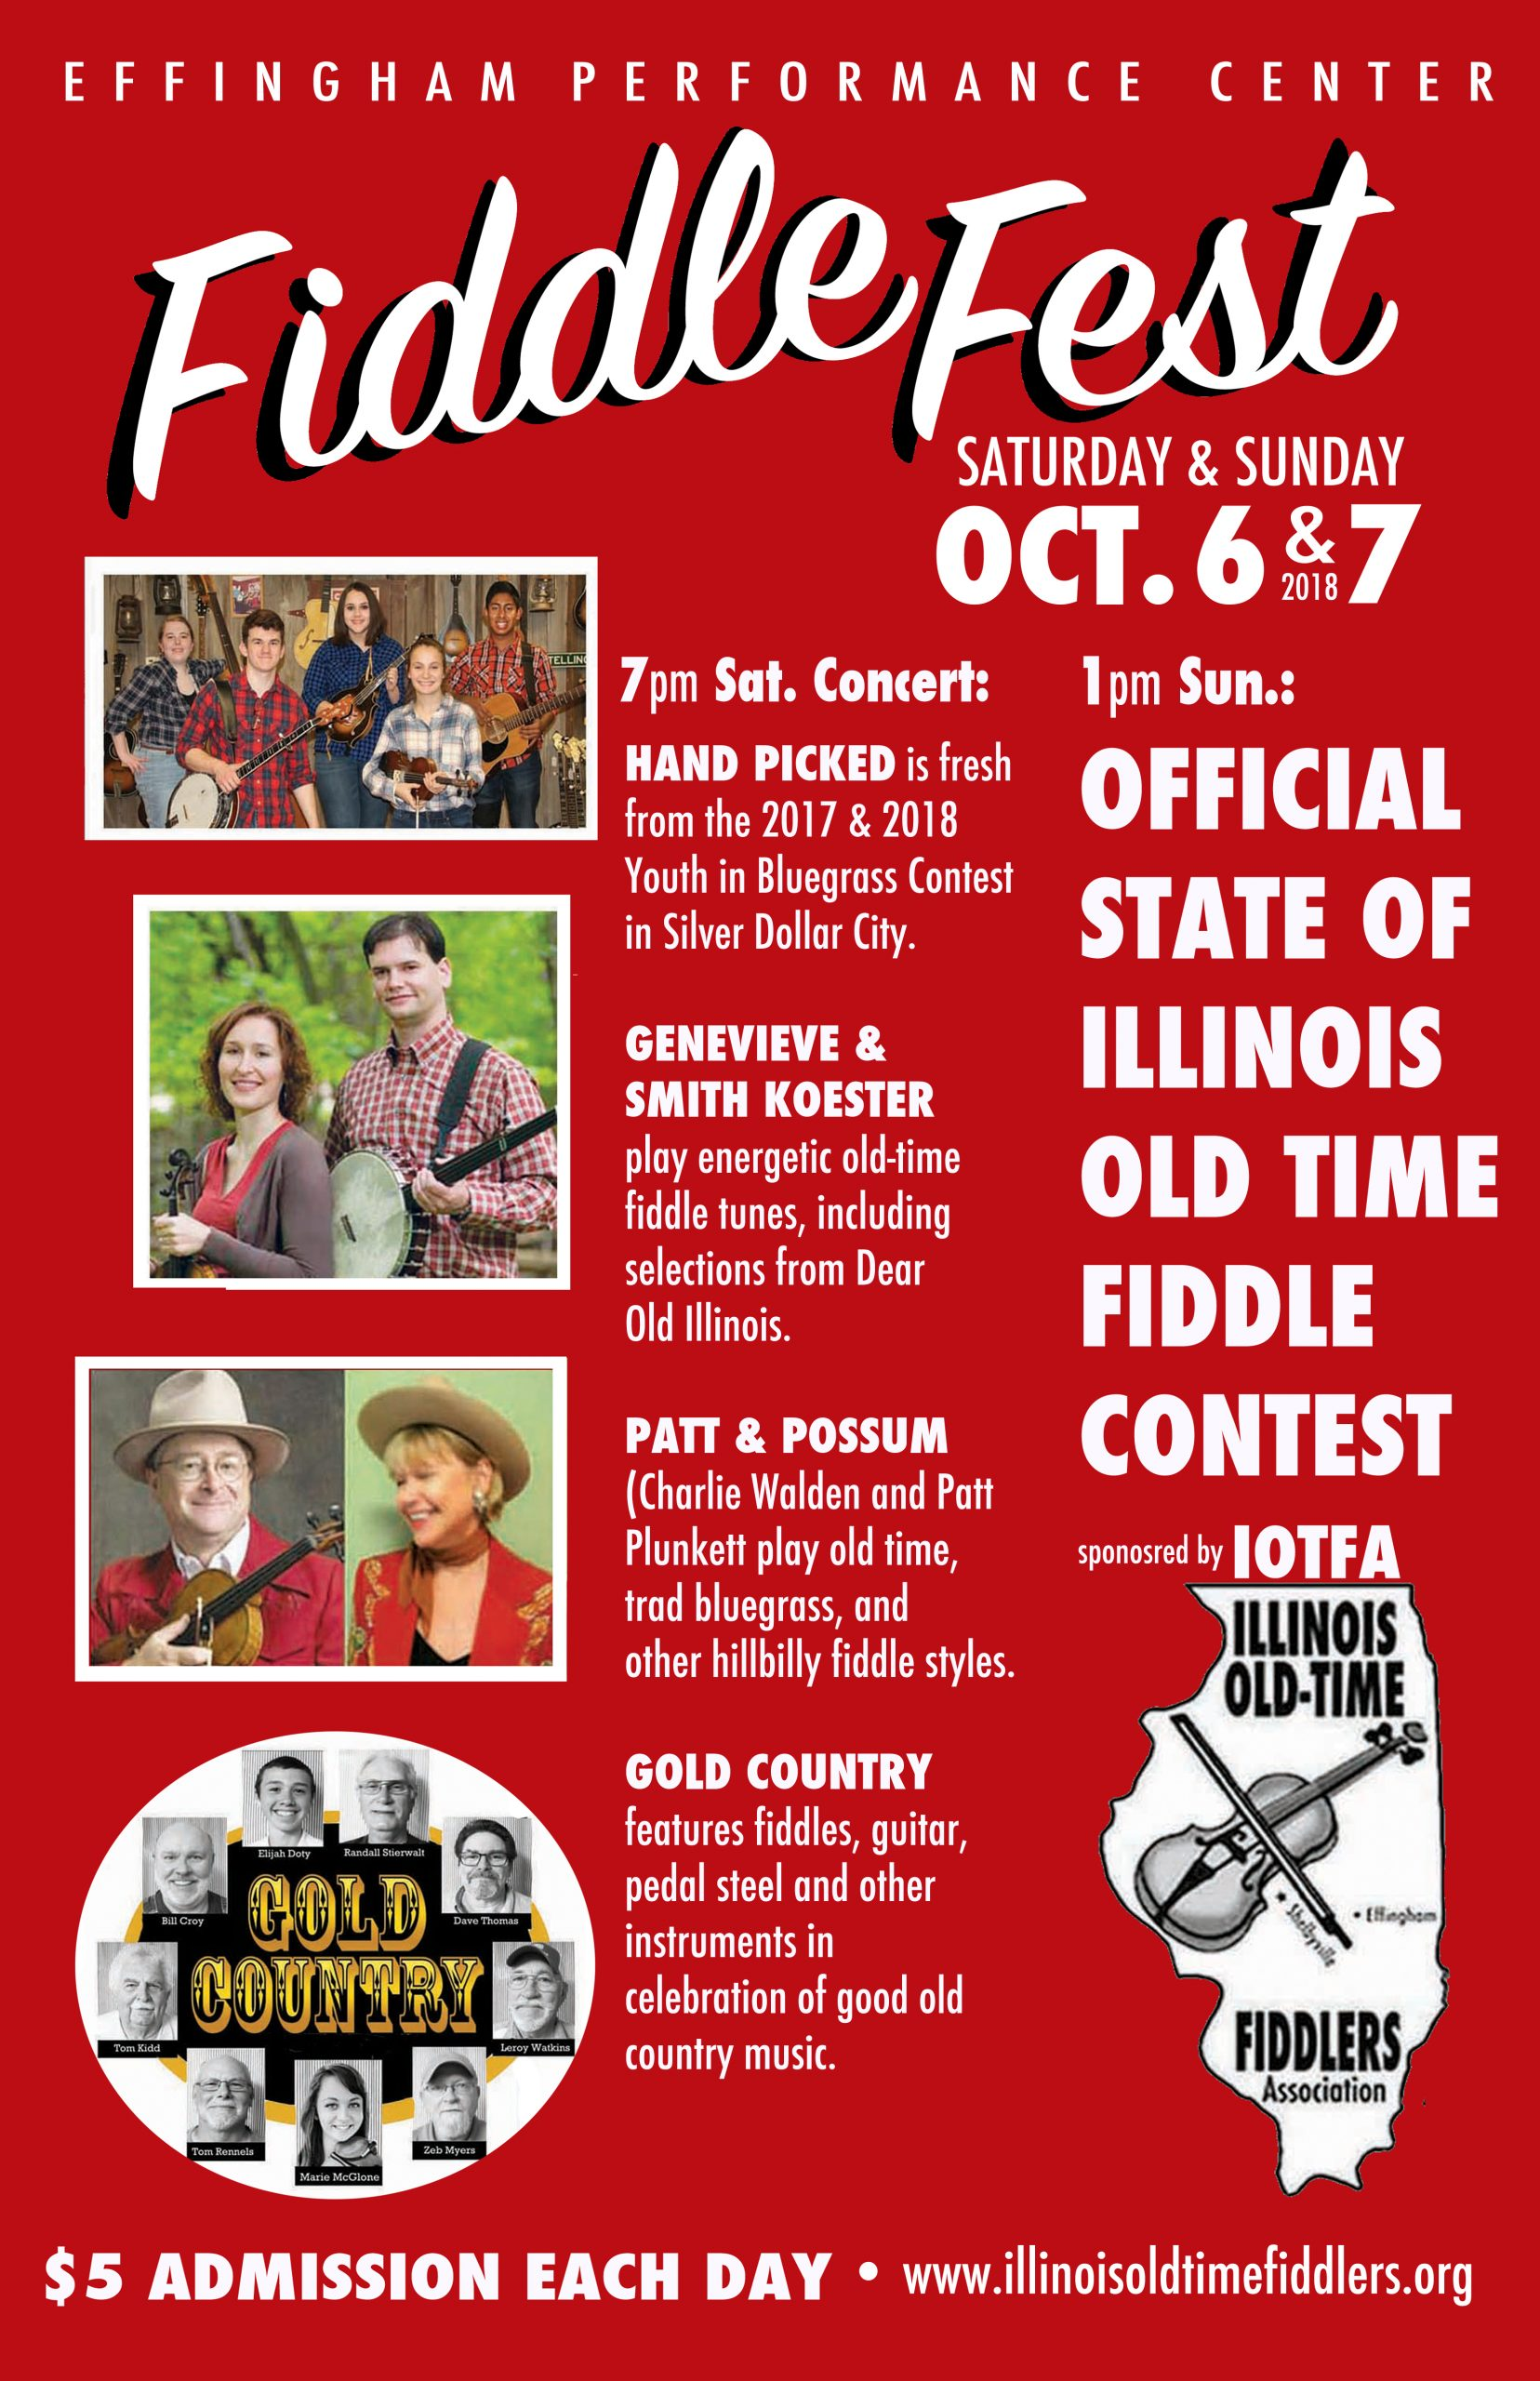 Illinois Old Time Fiddle Contest